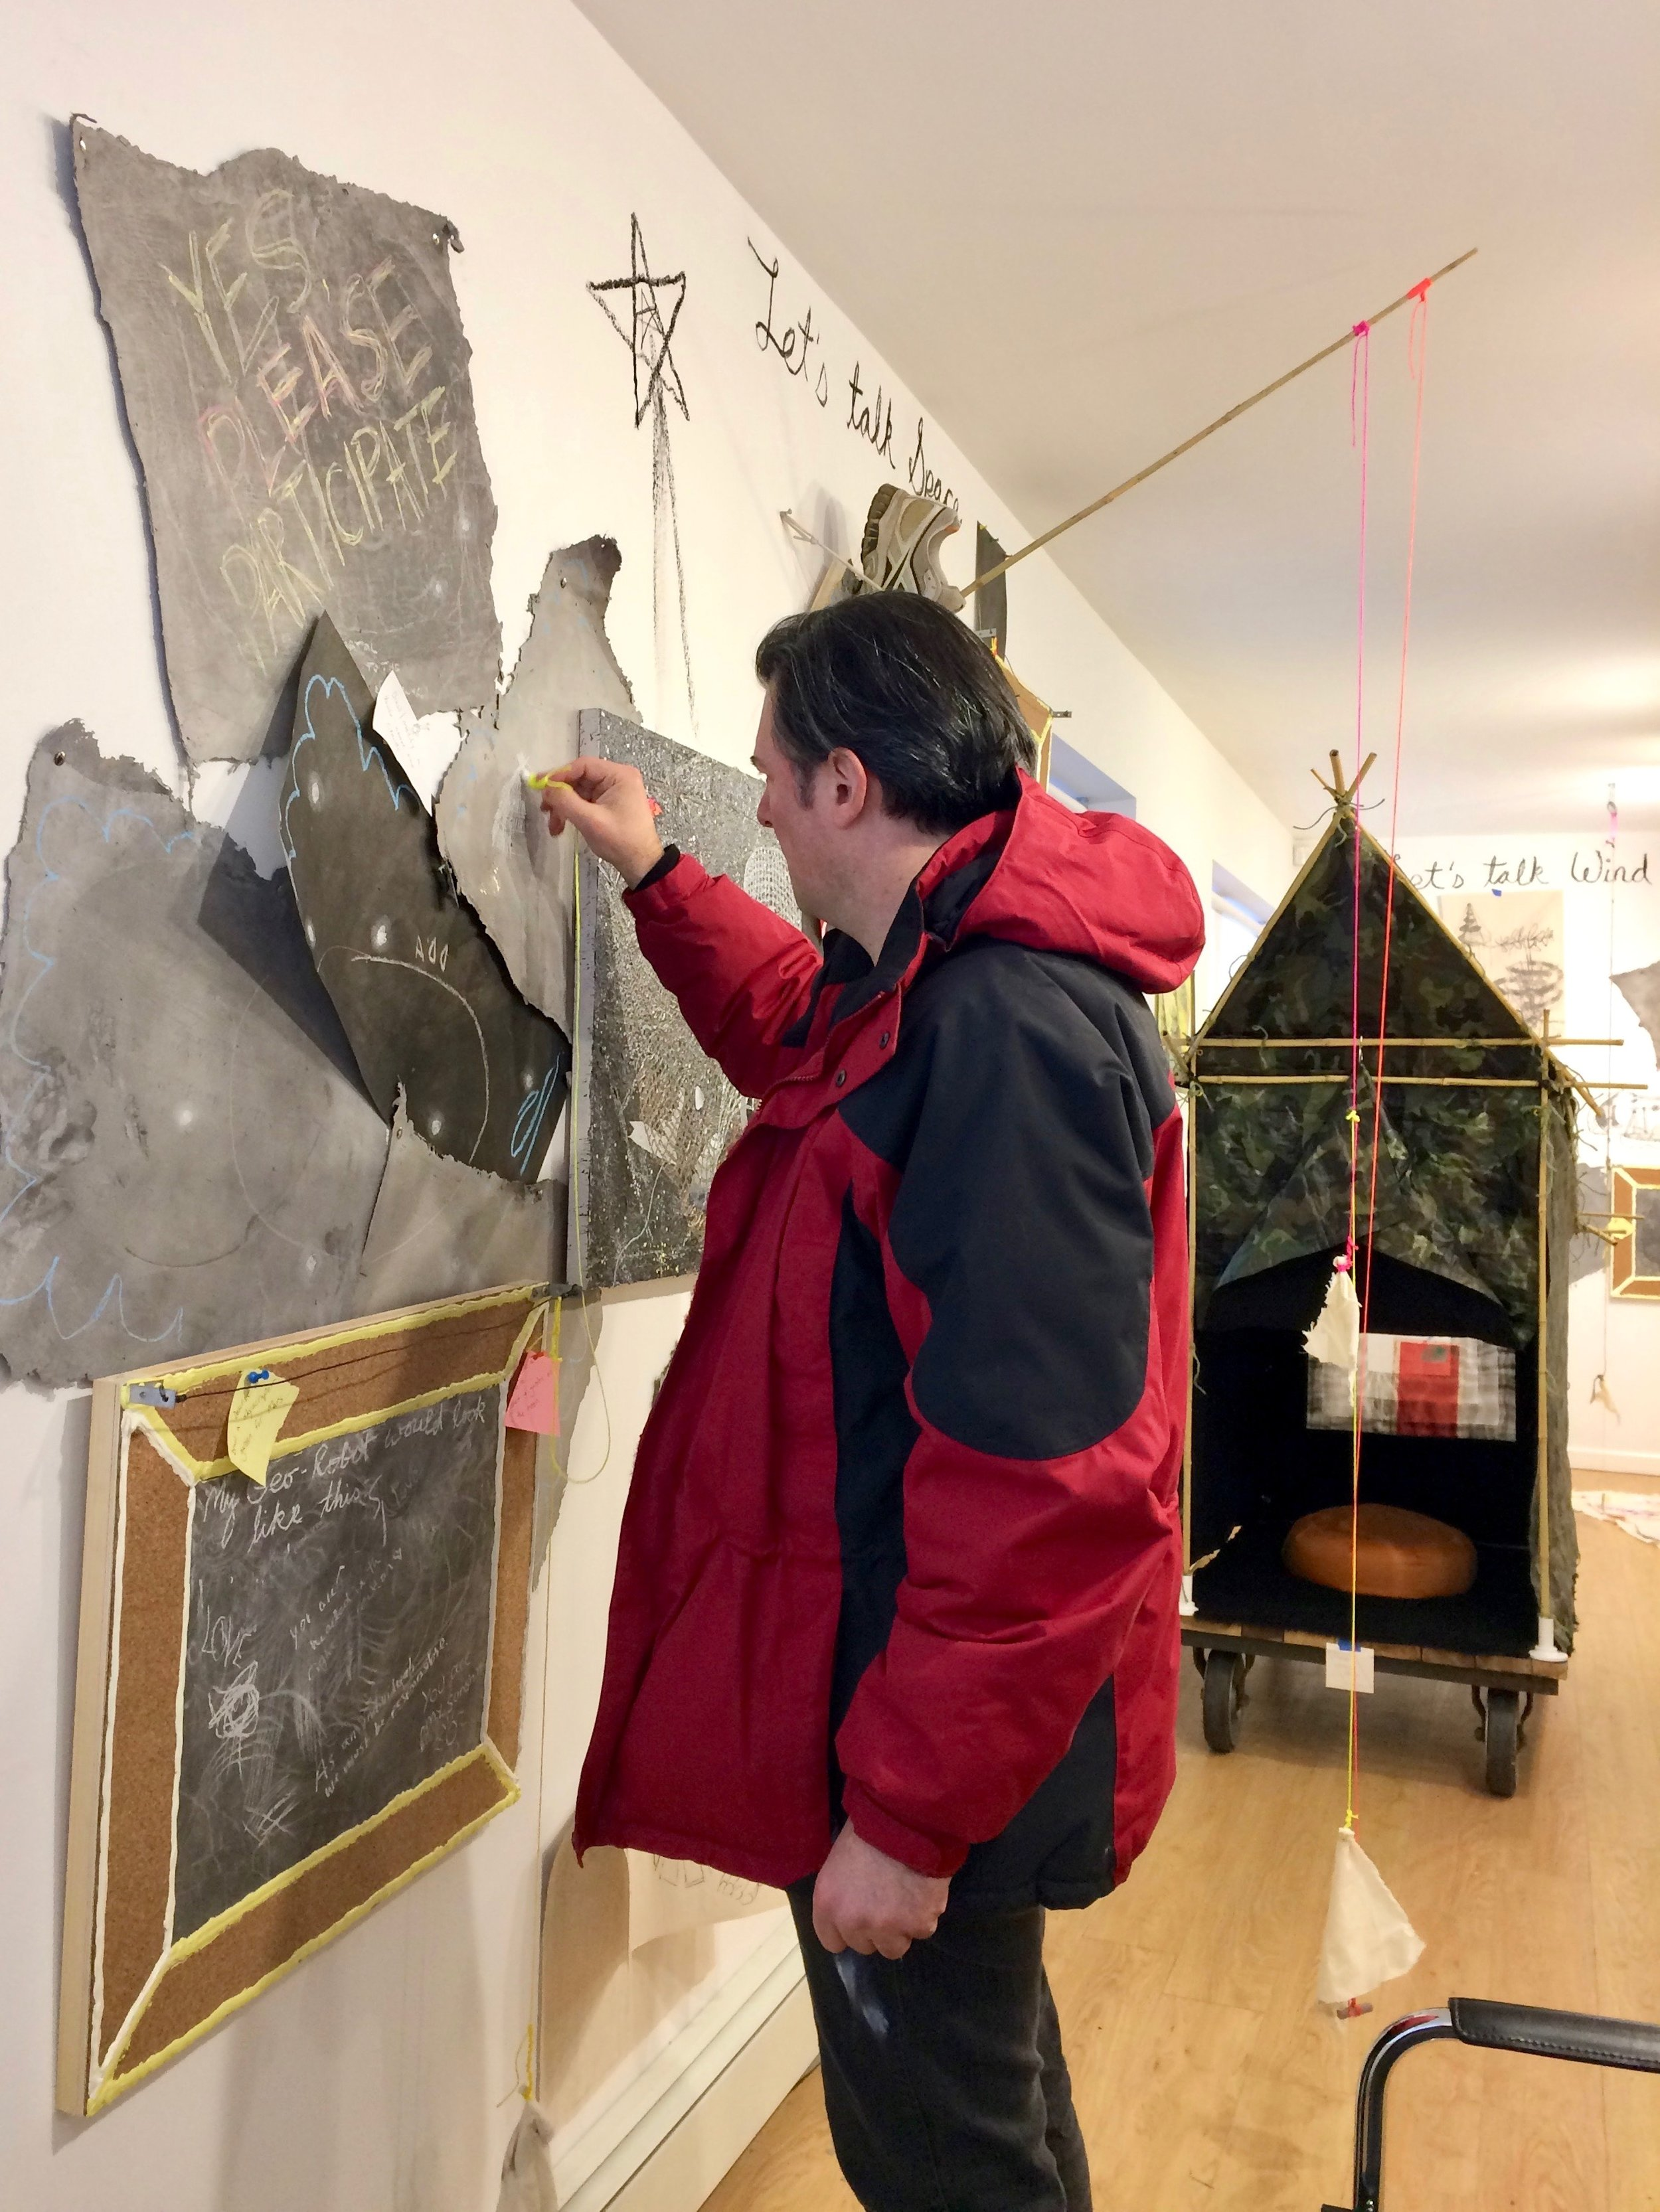 Beacon resident Greg Slick contributes to the installation. Photo Credit: Matteawan Gallery